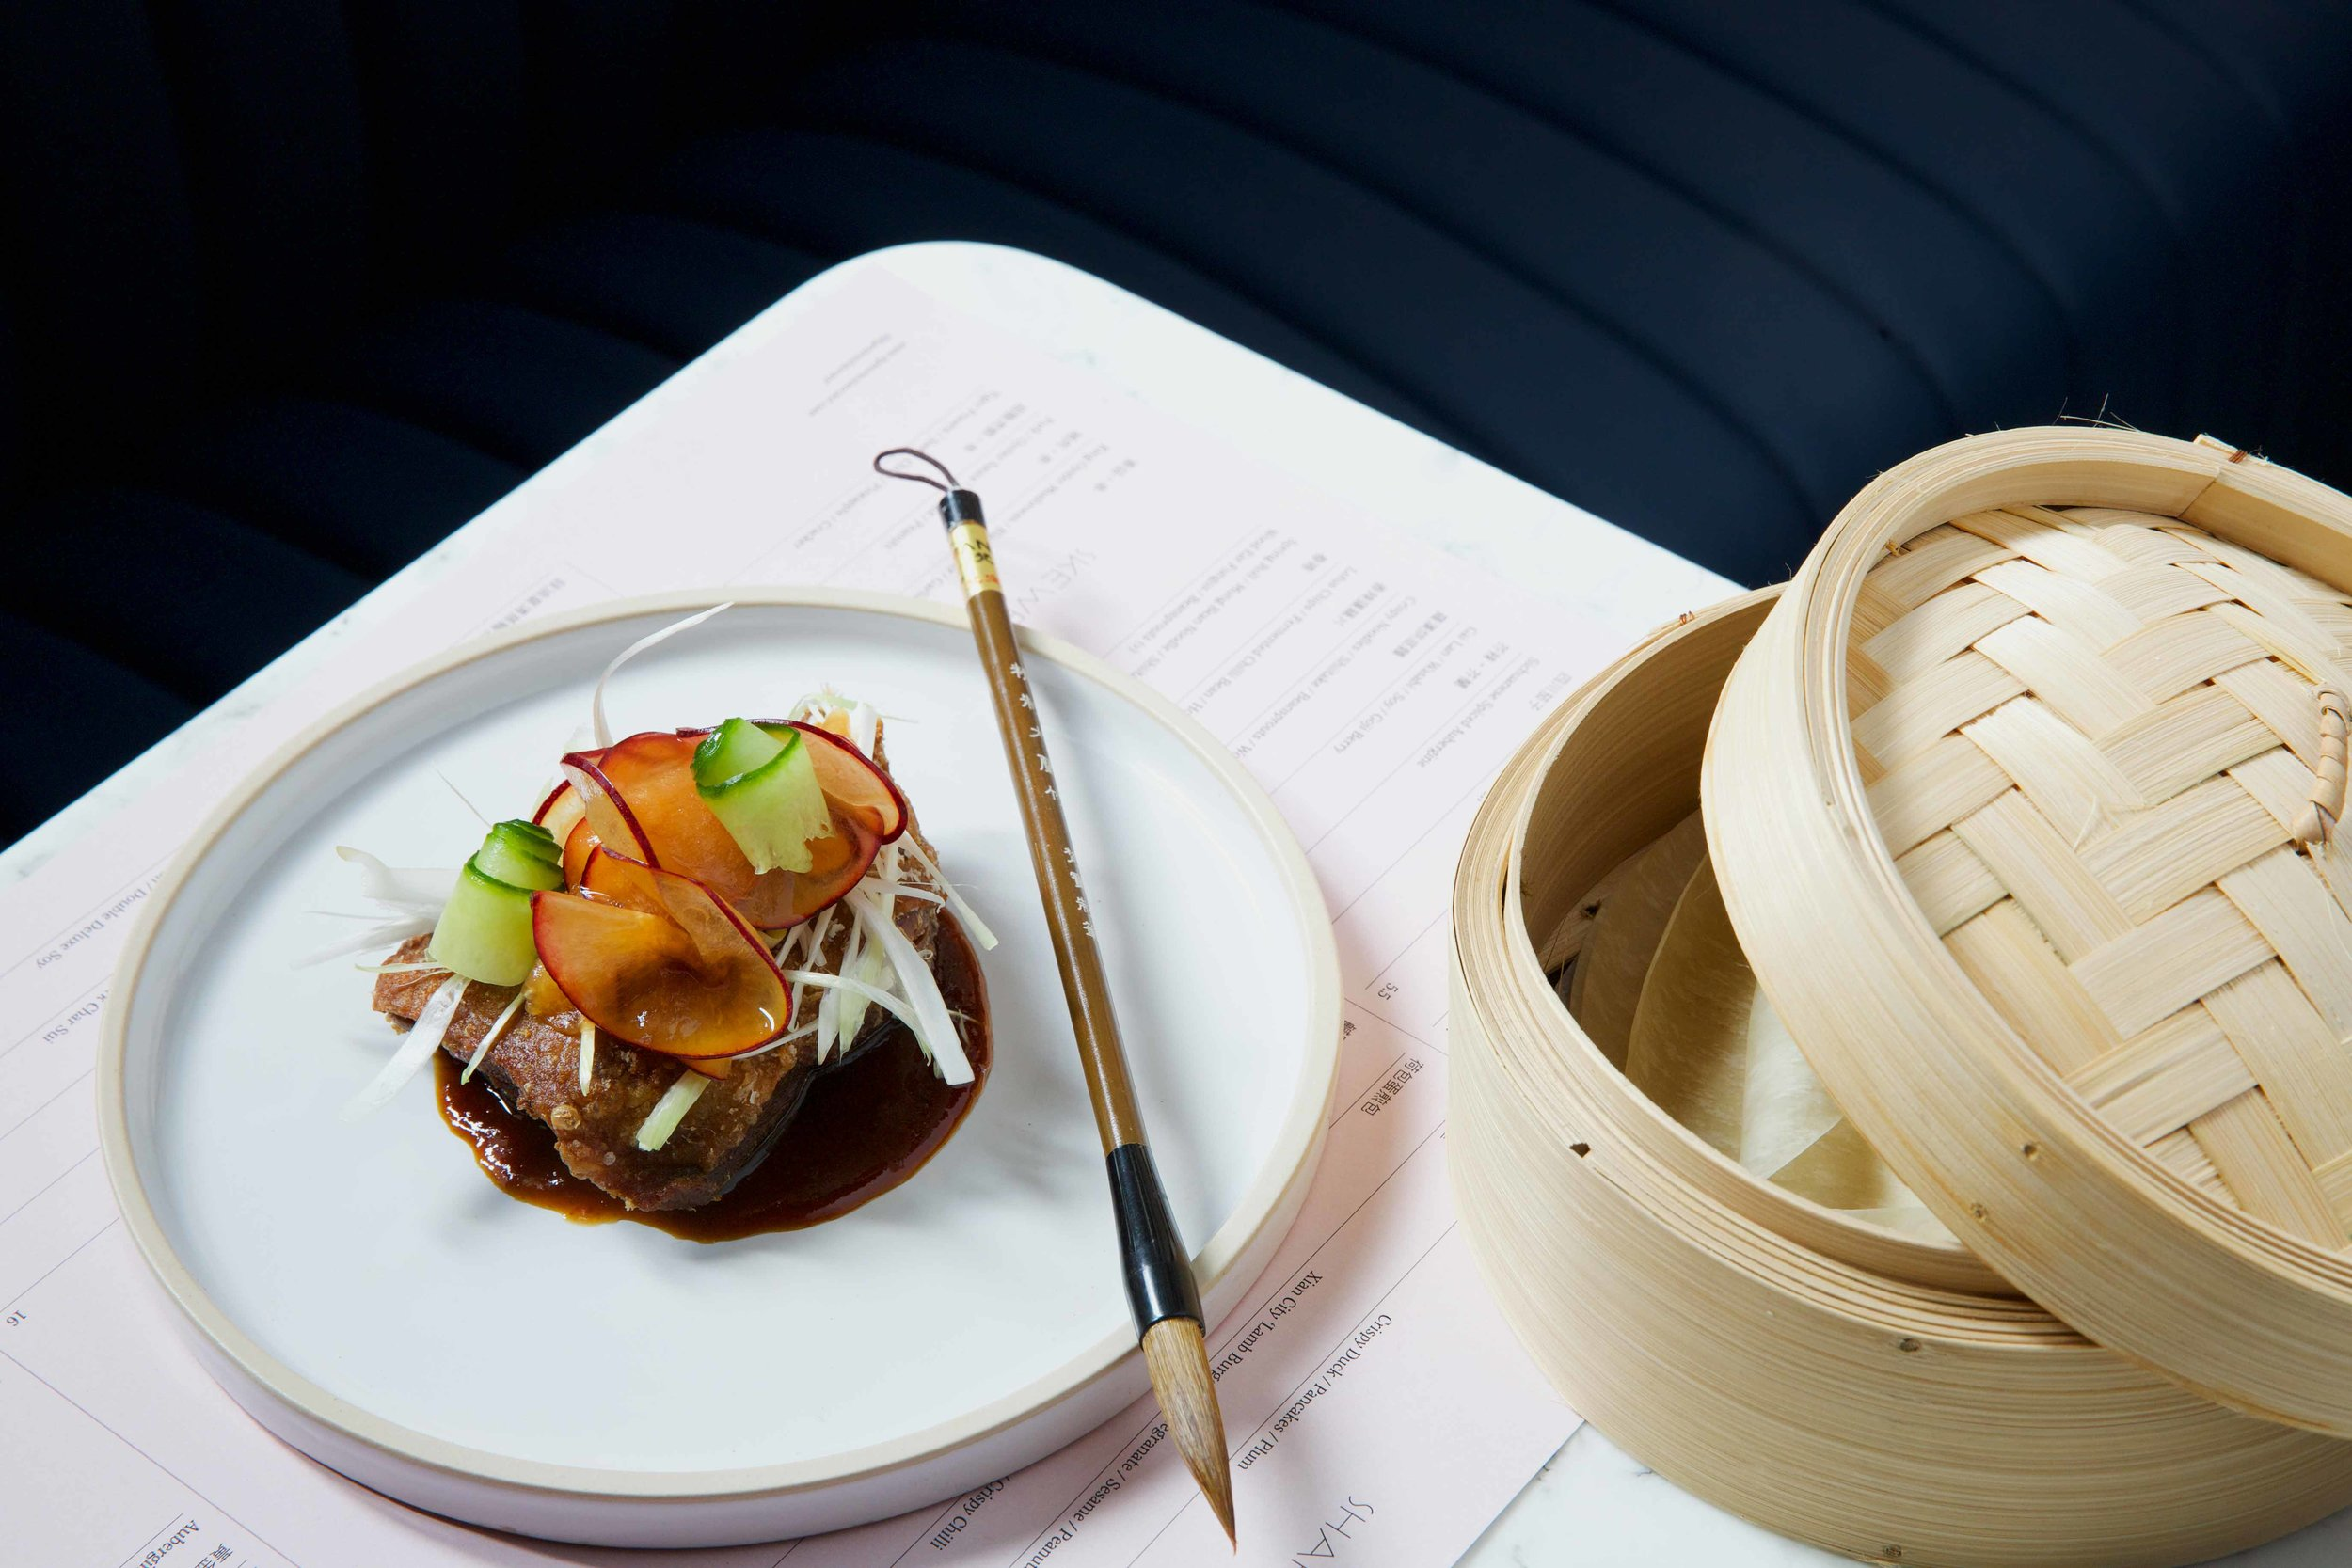 Kym's by Andrew Wong opens in Bloomberg Arcade